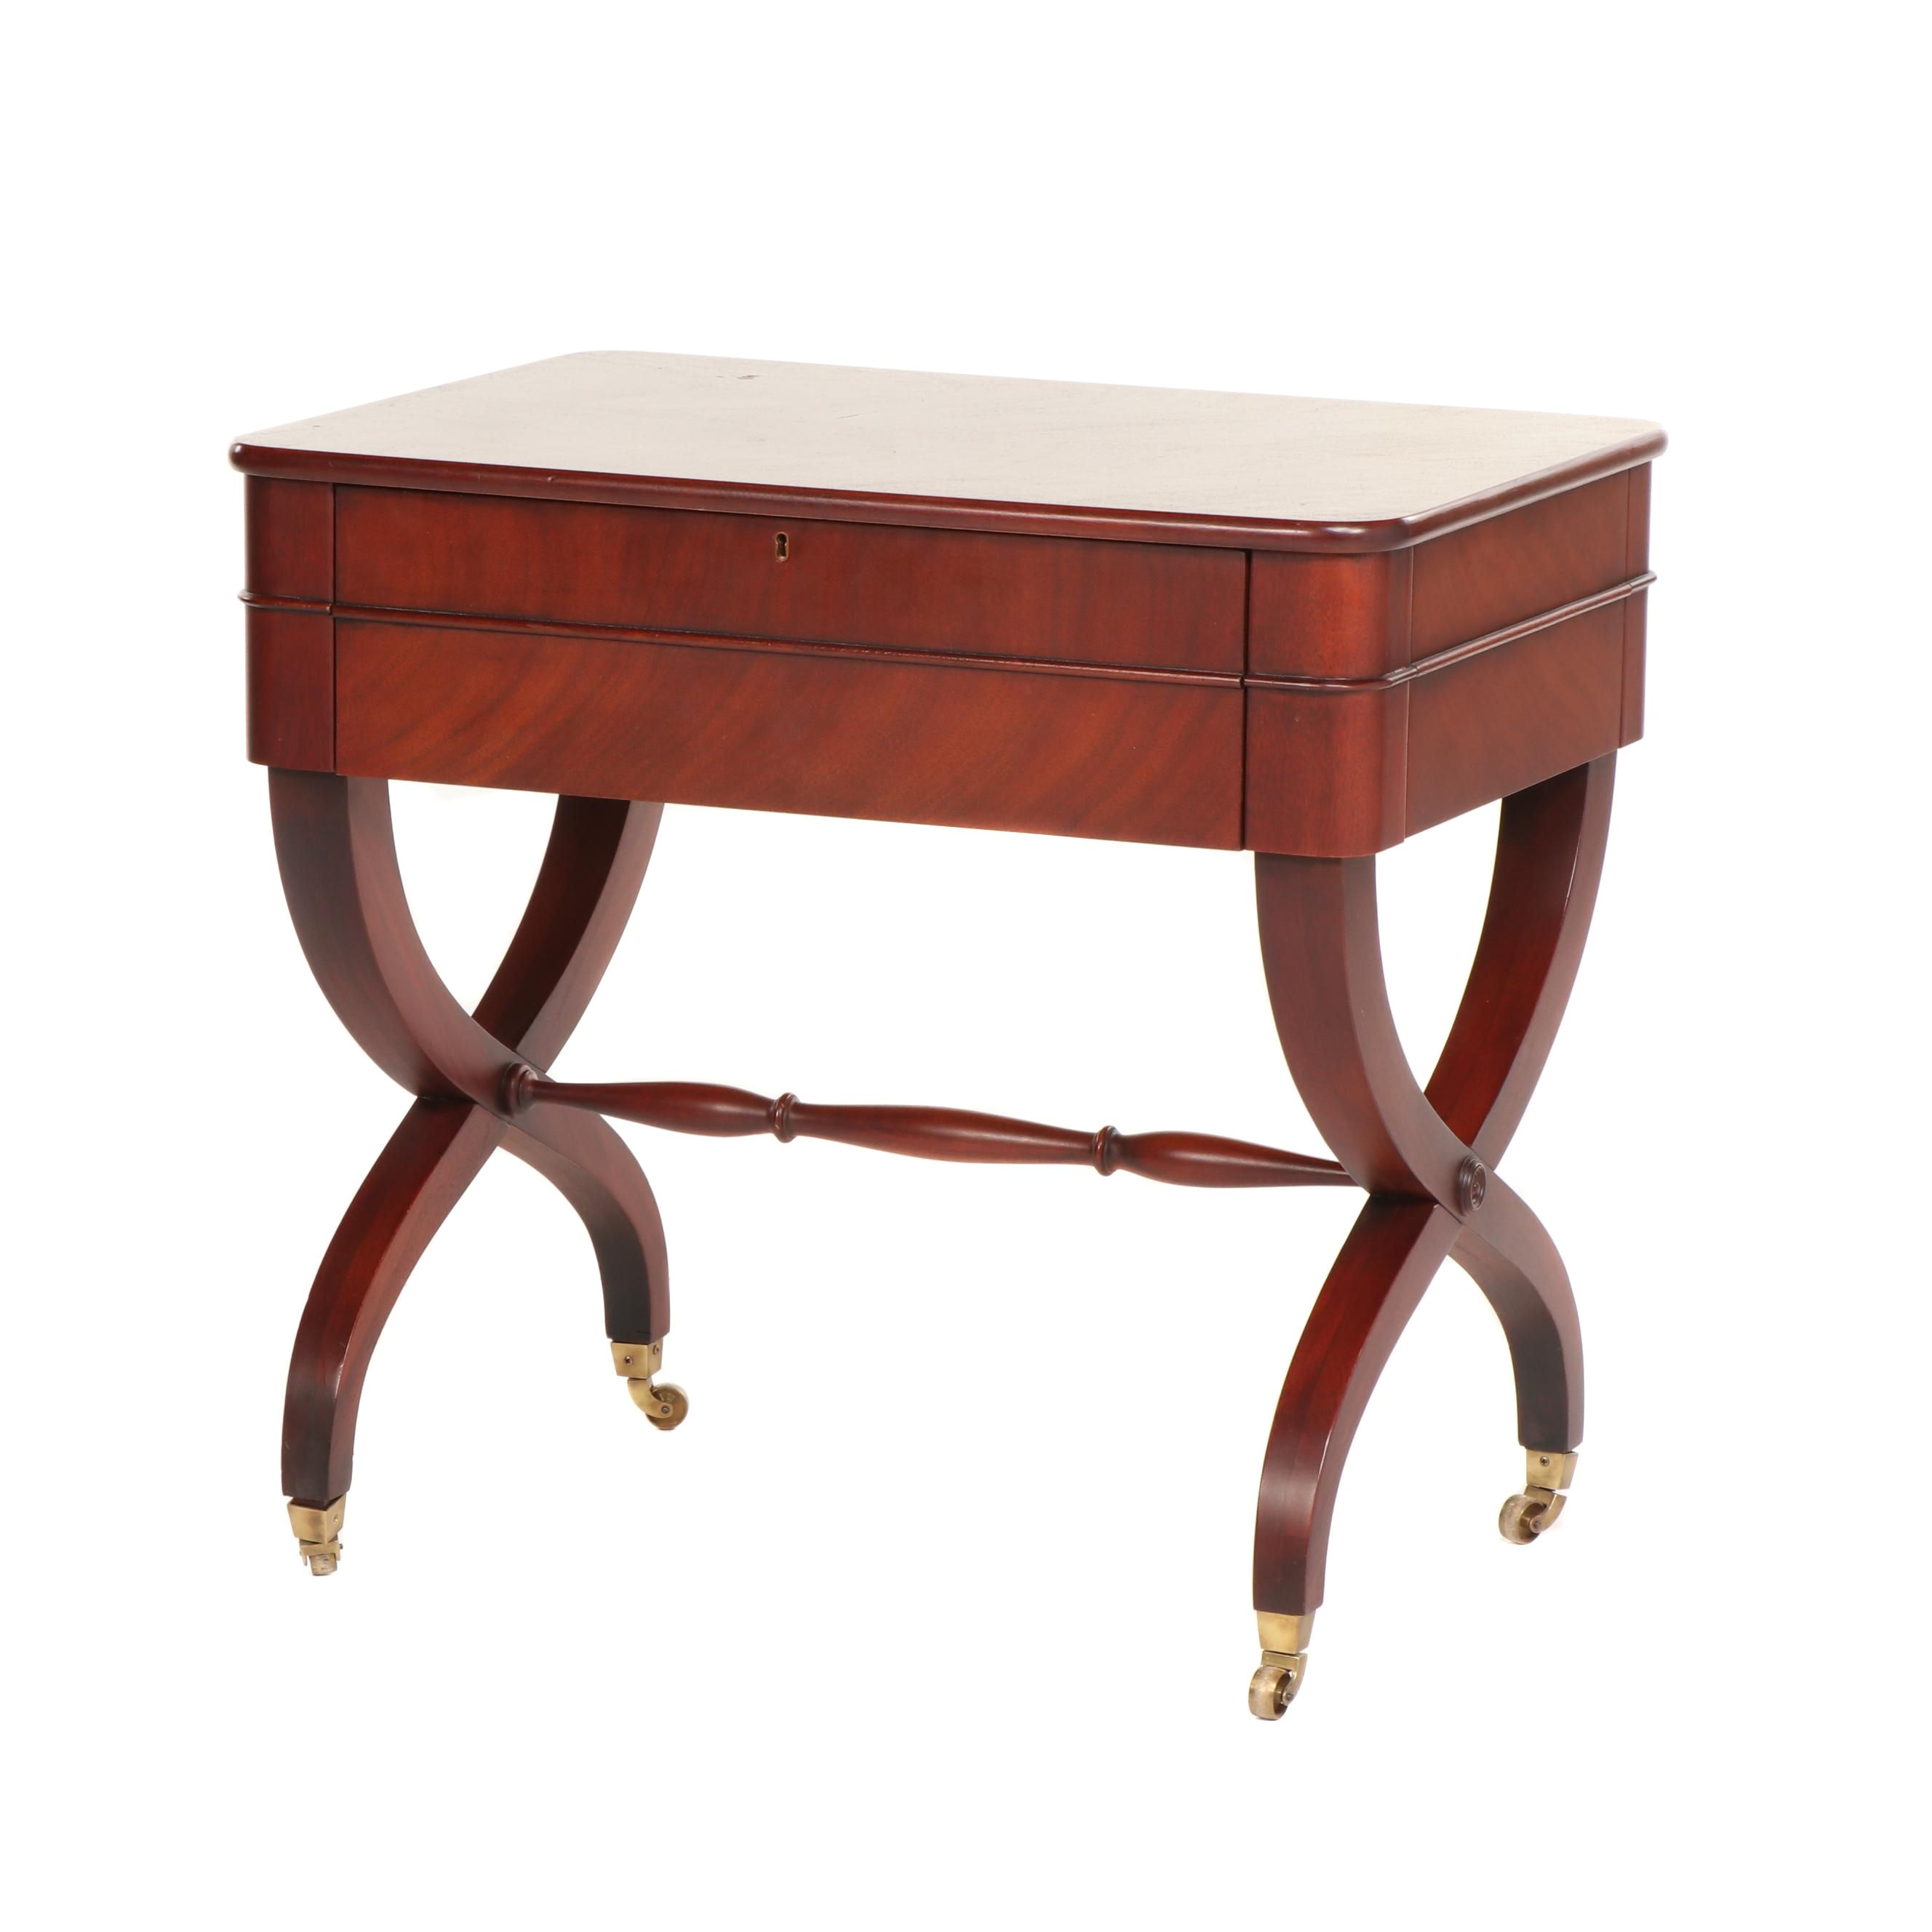 "Ralph Lauren ""Barlow"" Mahogany Side Table, 21st Century"